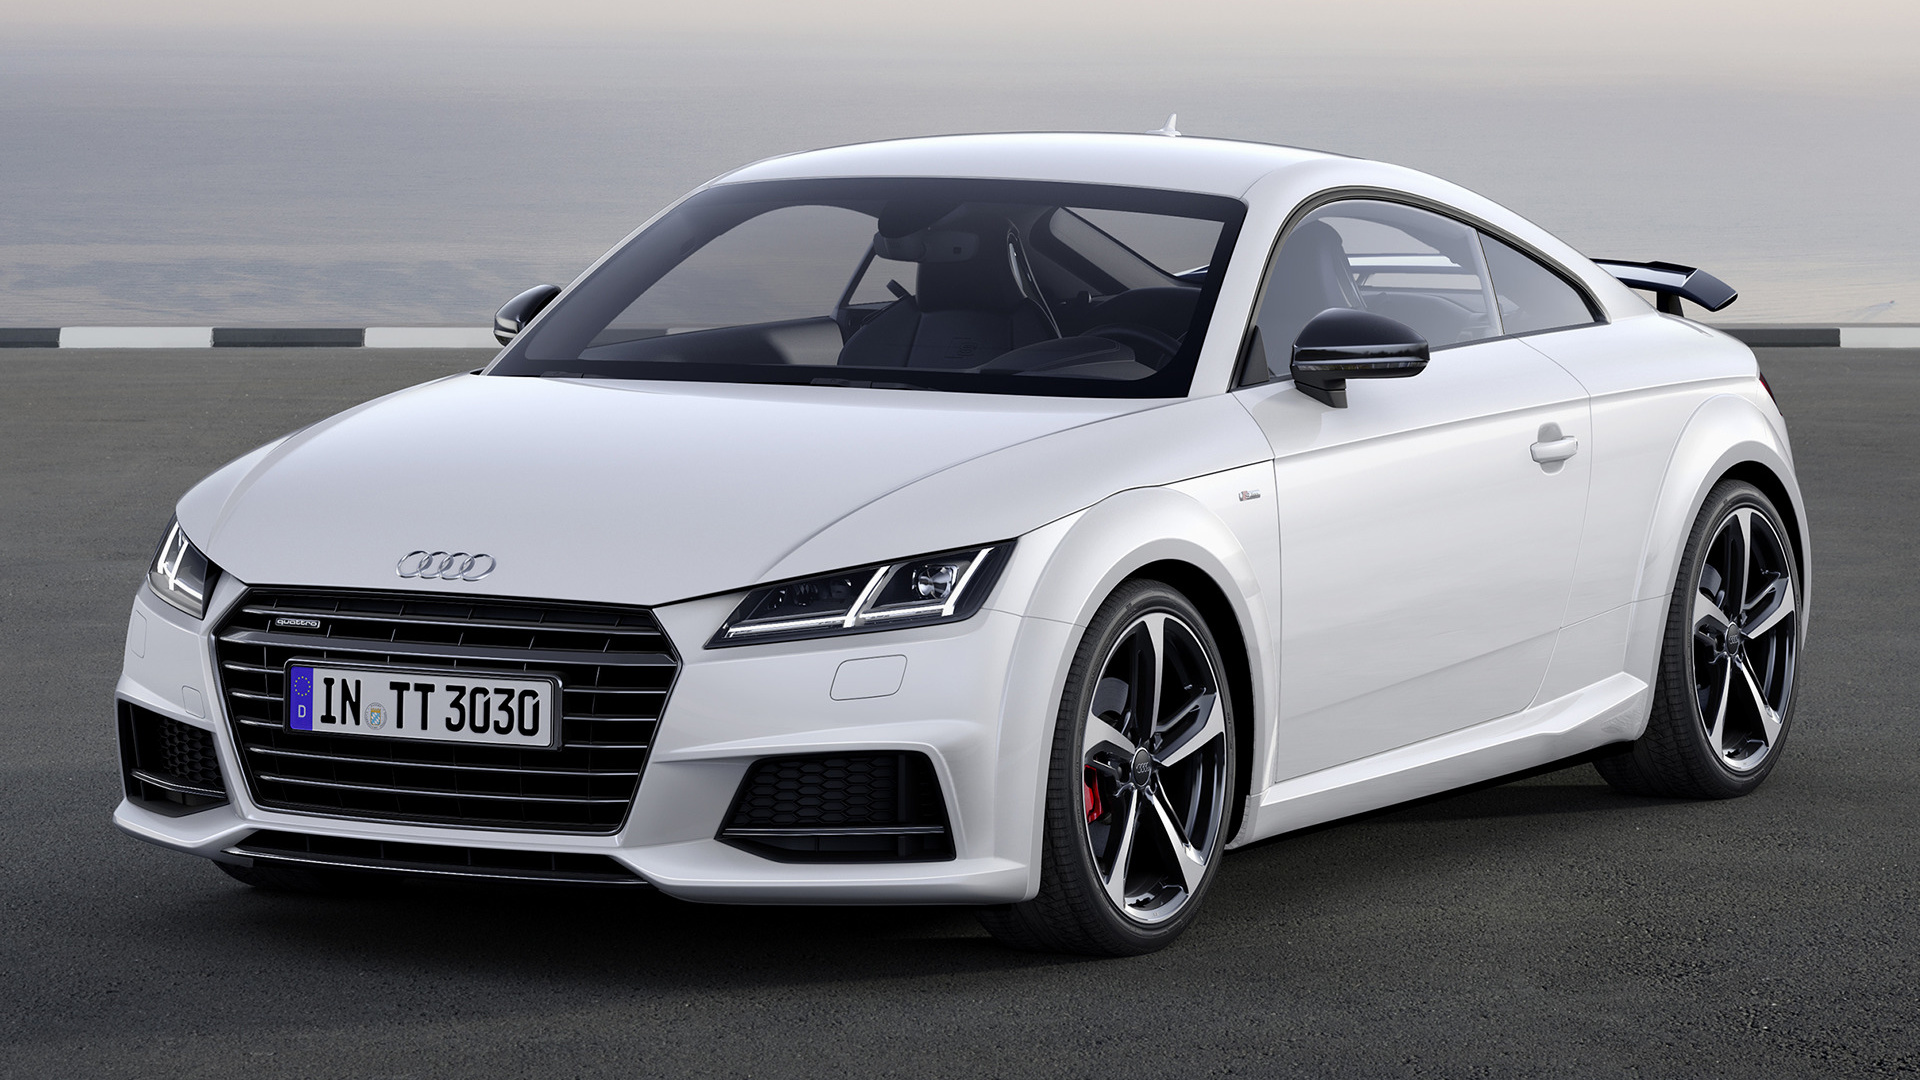 audi tt coupe s line competition 2016 wallpapers and hd. Black Bedroom Furniture Sets. Home Design Ideas